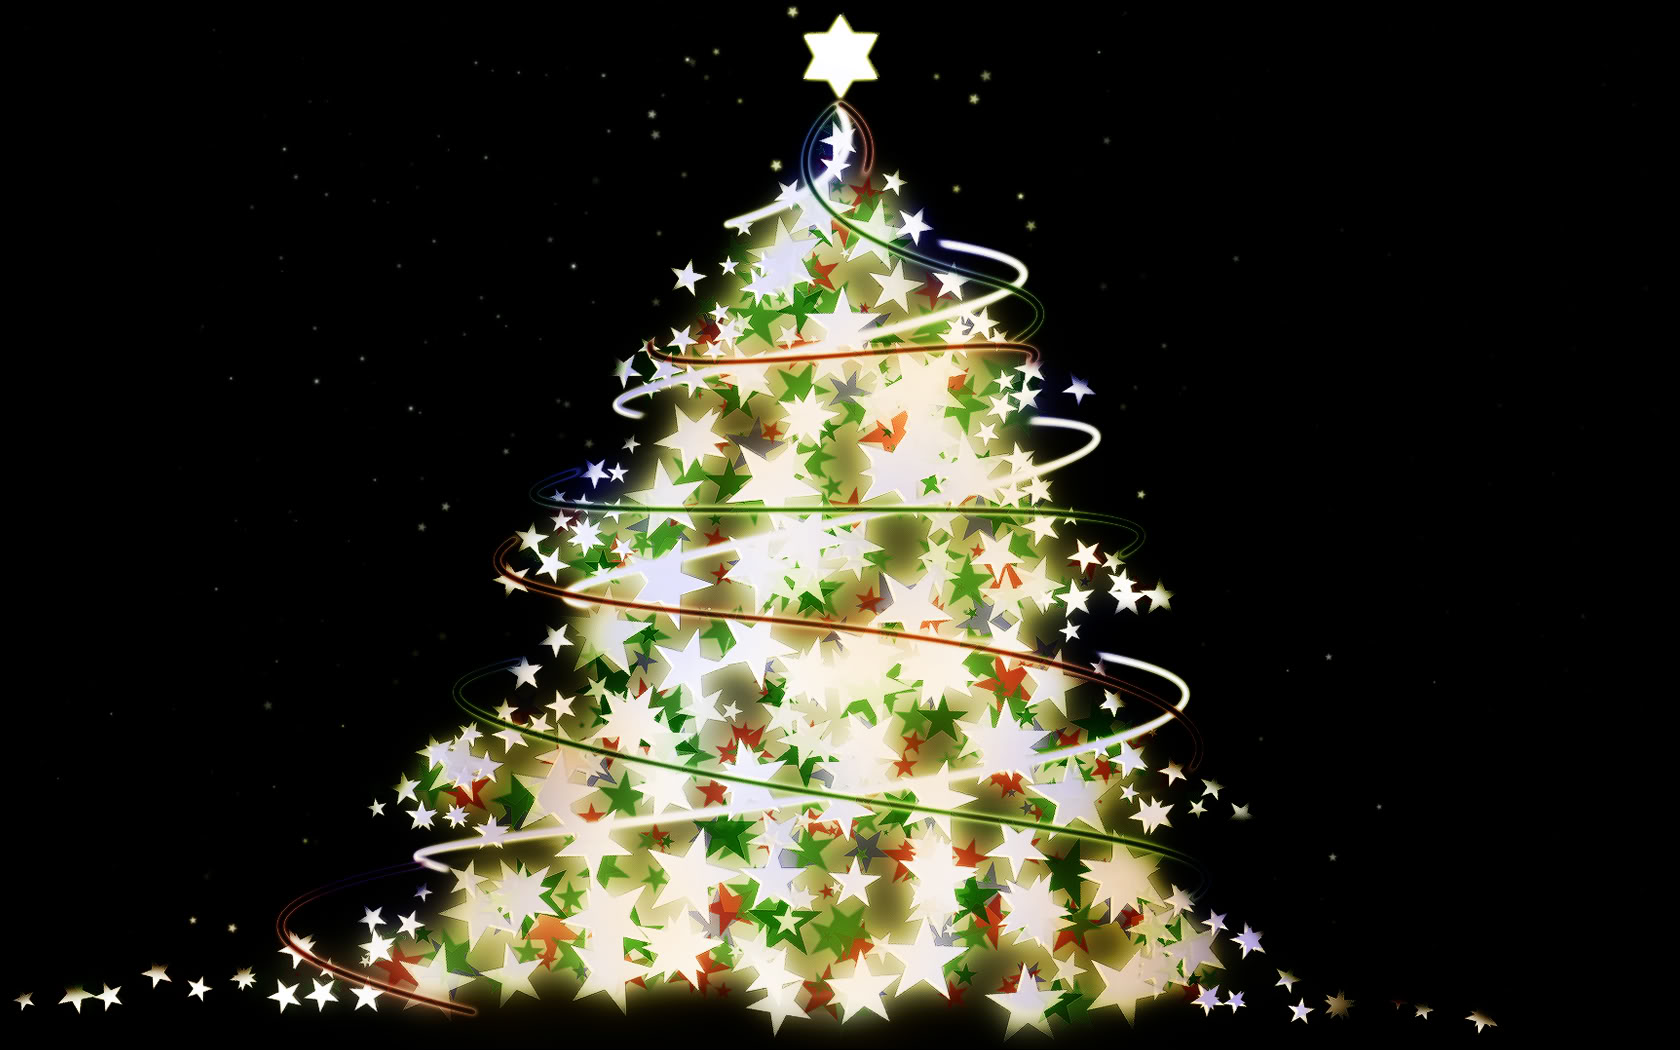 Wallpaper Christmas Tree wallpaper Desktop Wallpaper Christmas Tree 1680x1050